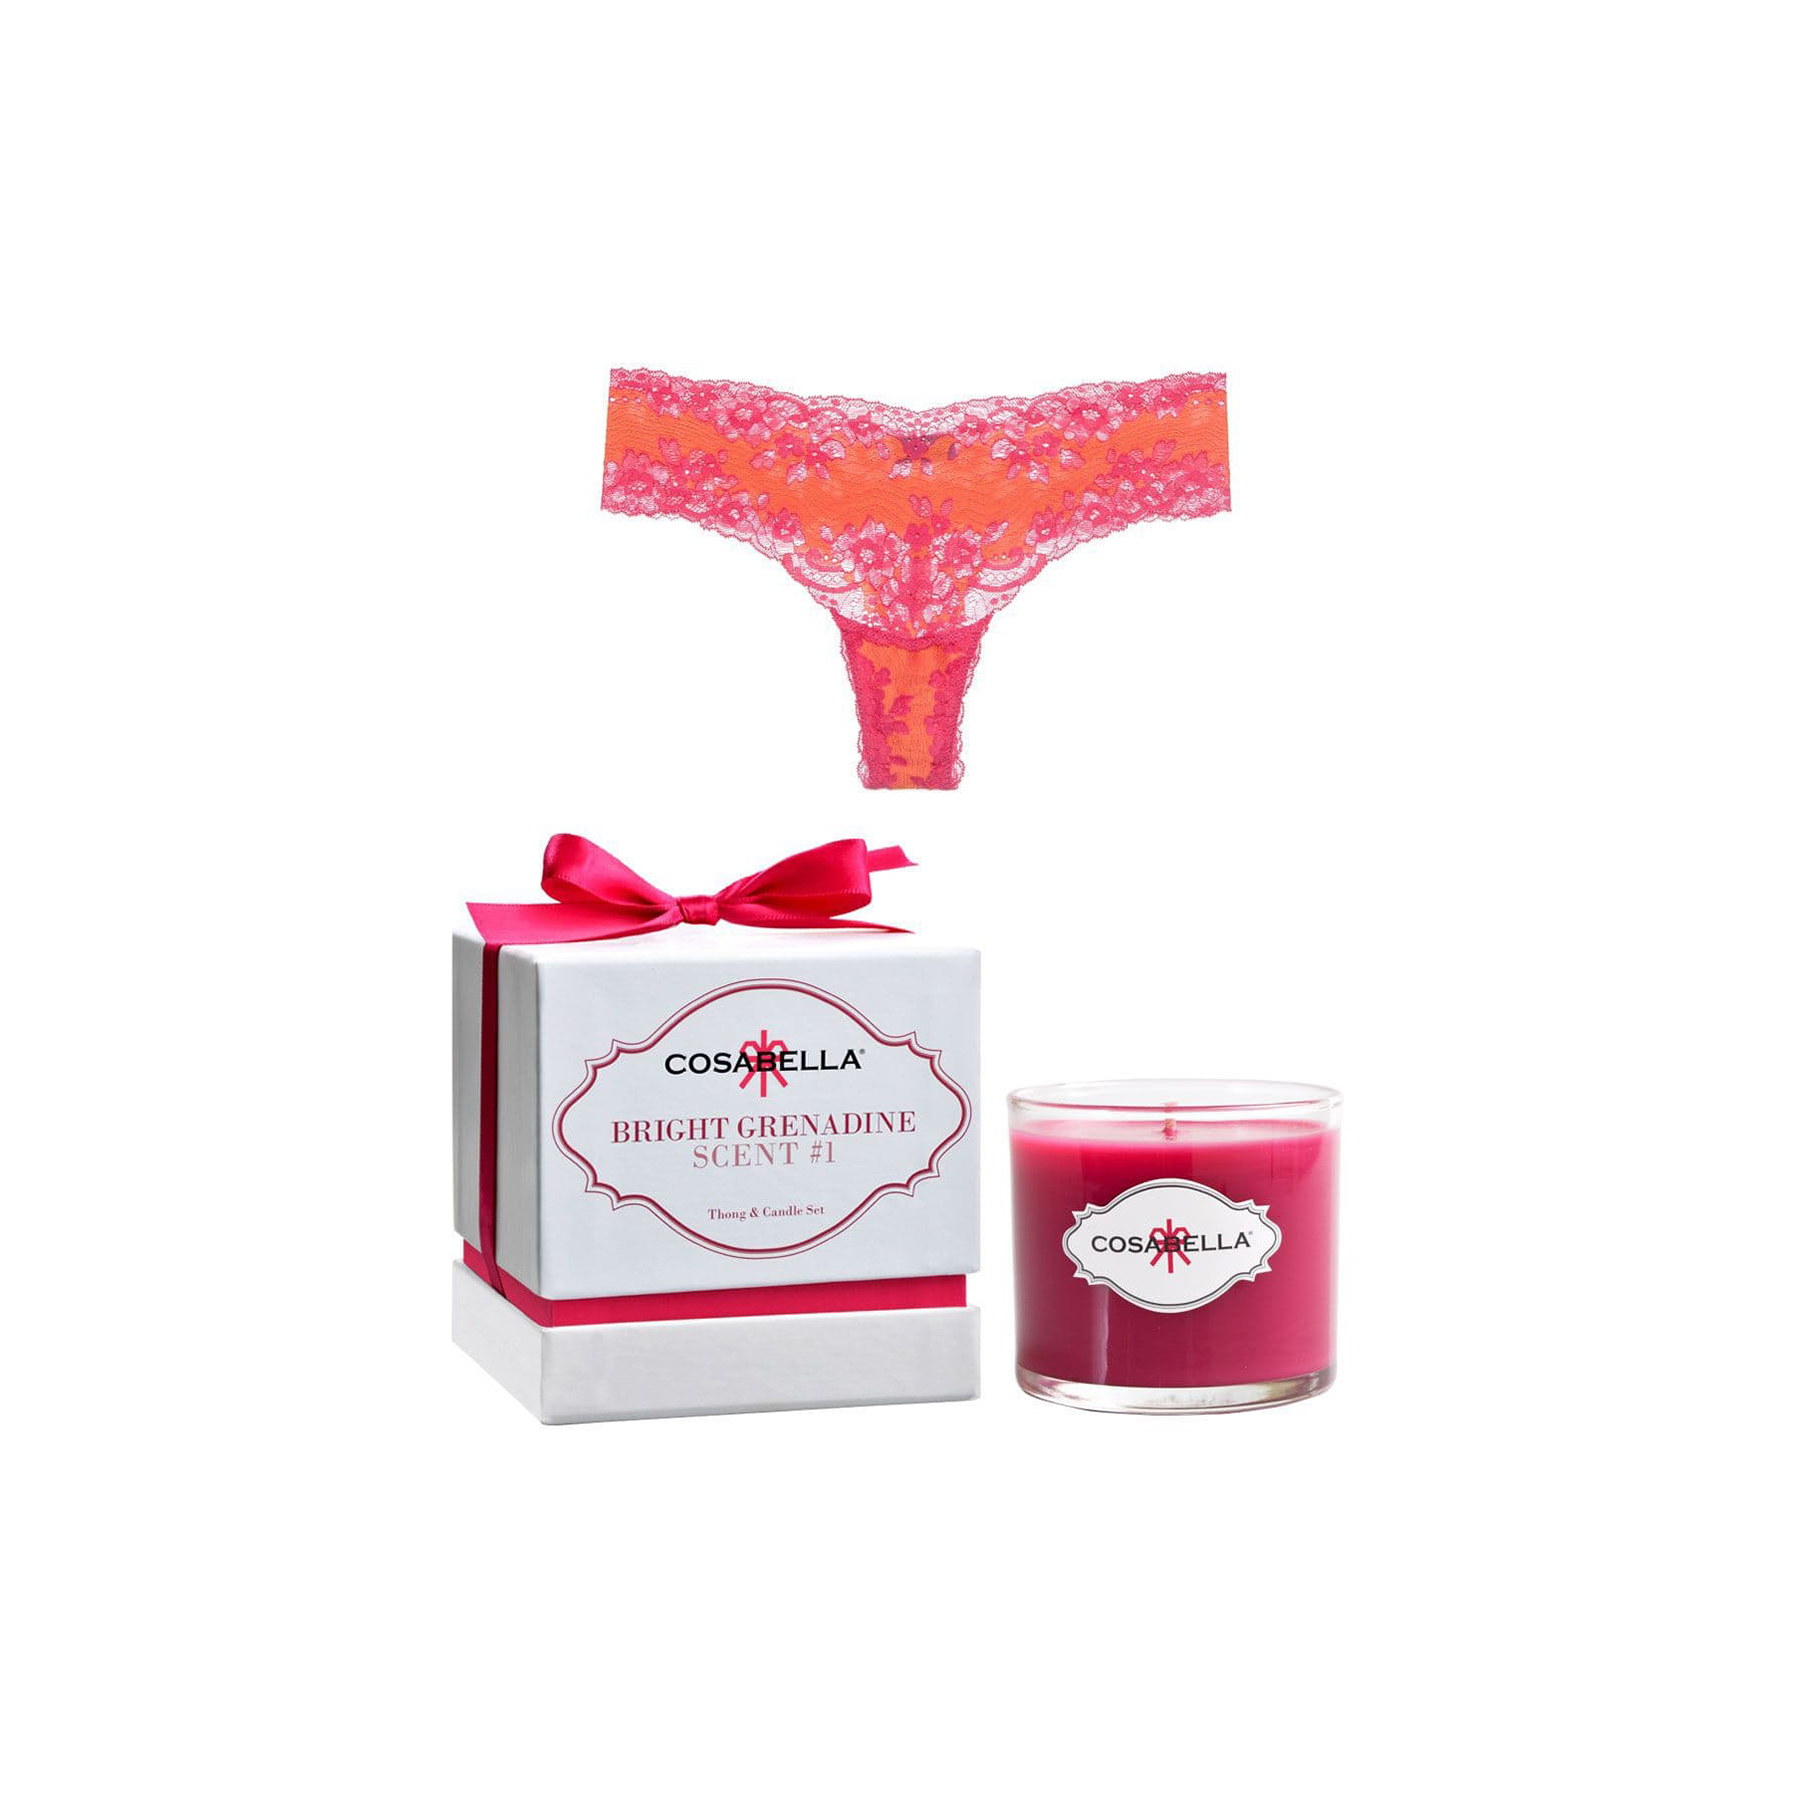 Cosabella Italia Lace Thong & Candle Set